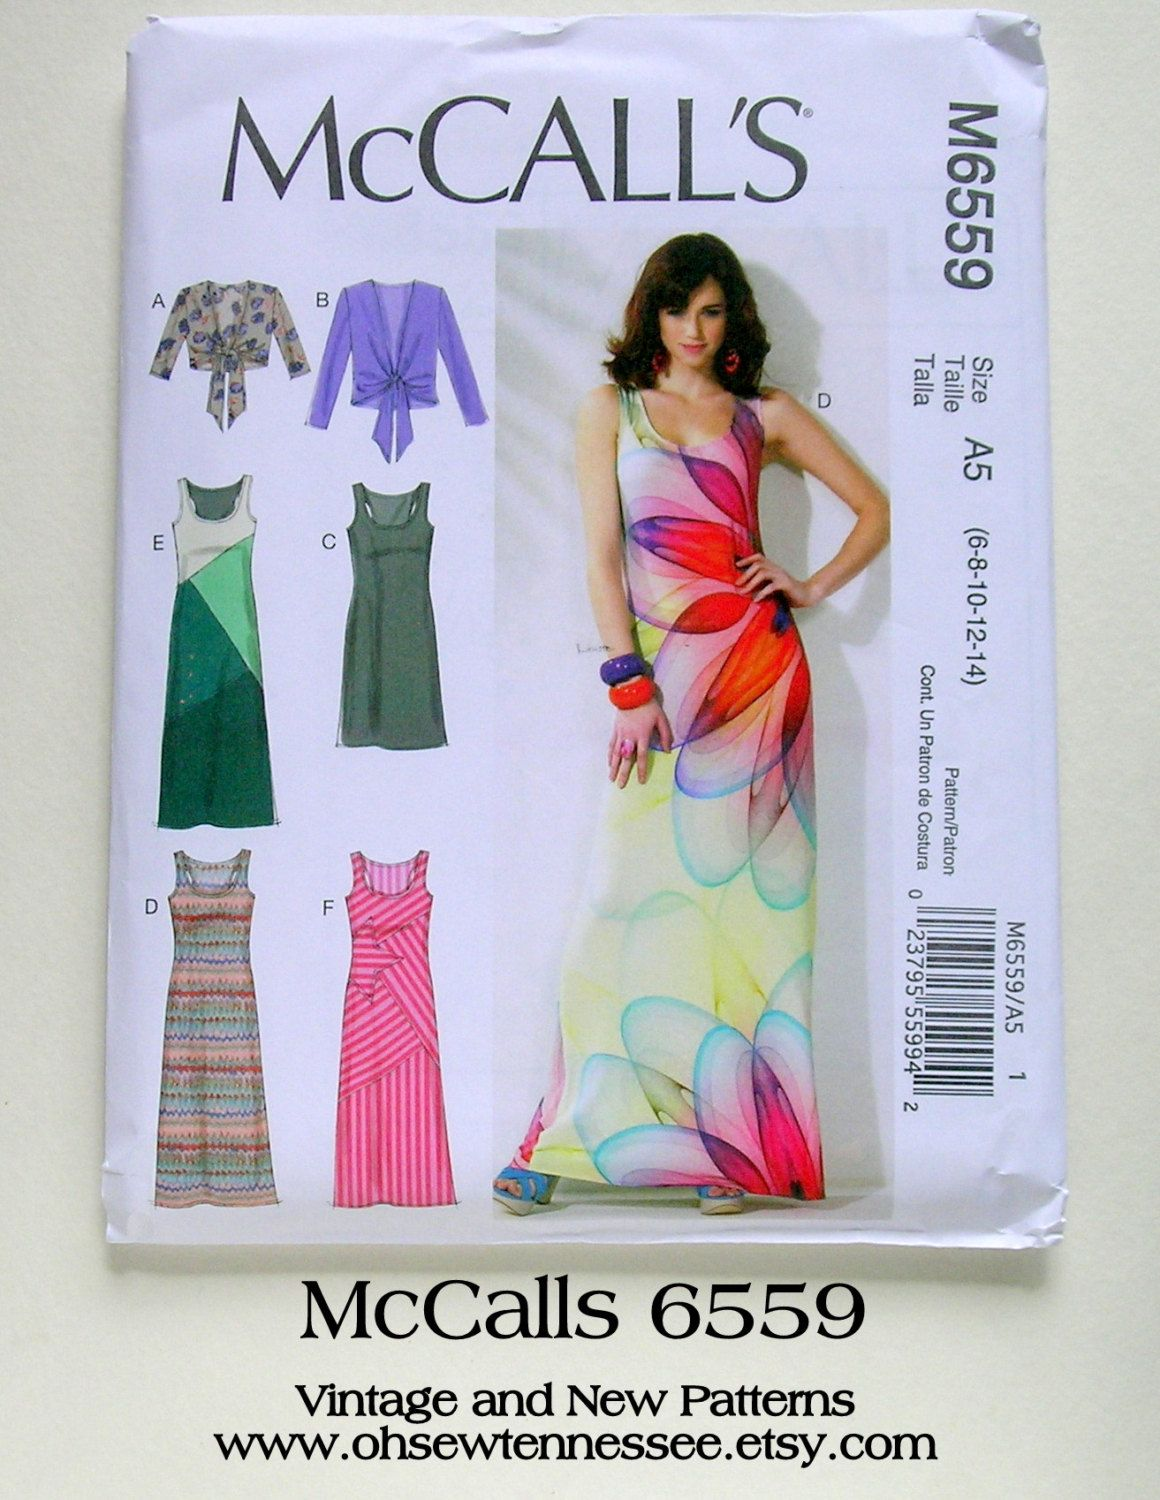 Ladiesu long or short dress and unlined jacket mccalls new